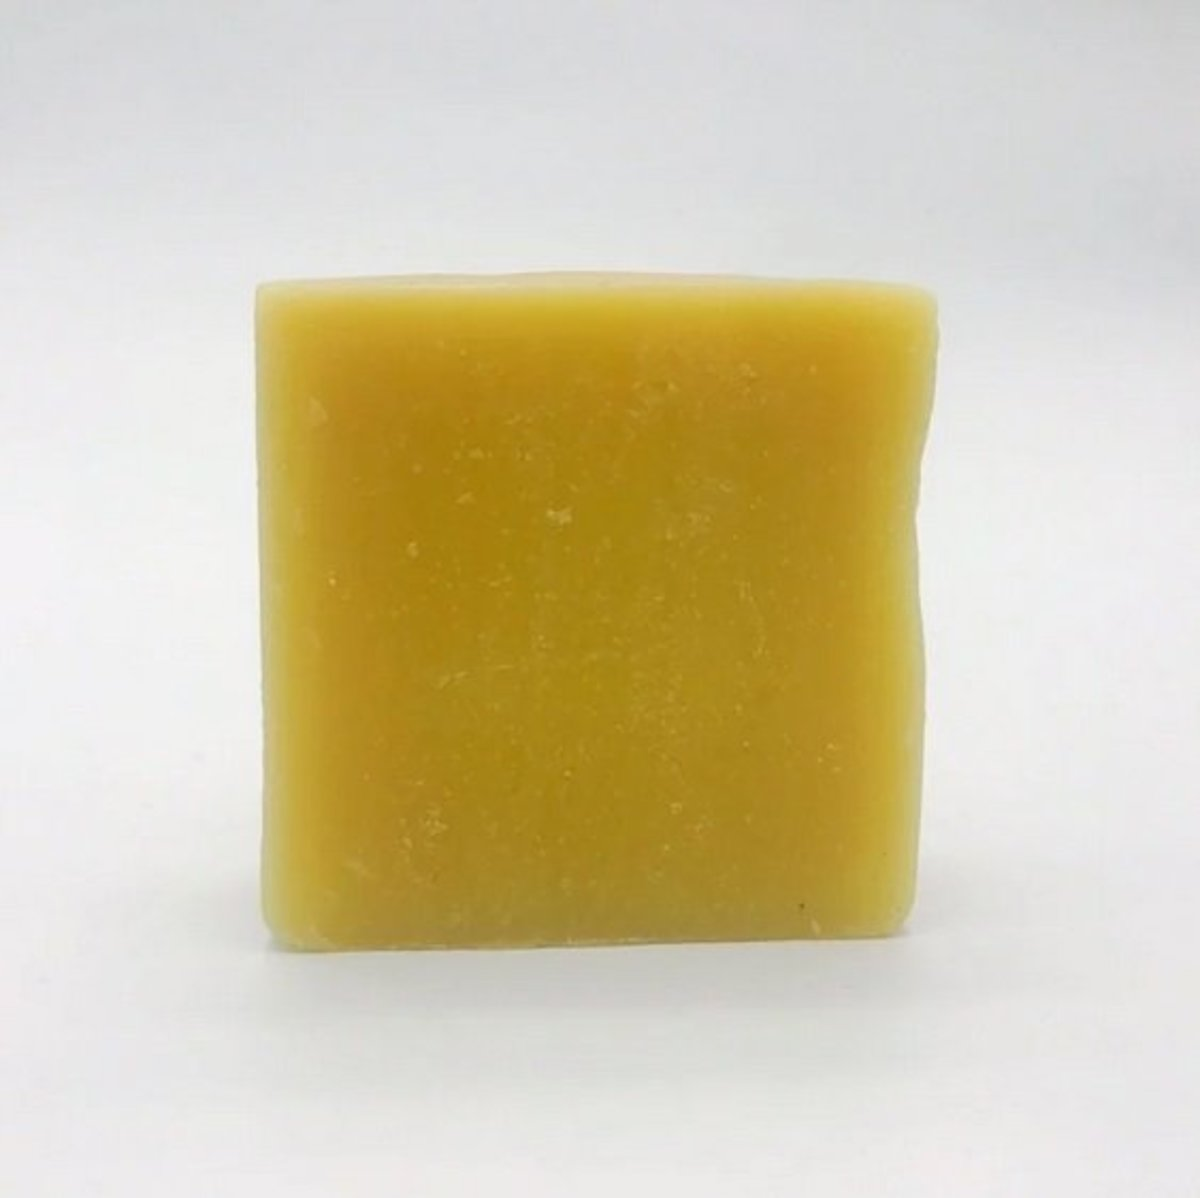 Handmade Olive Oil All Natural Cleansing Soap 100g (Body & Facial)